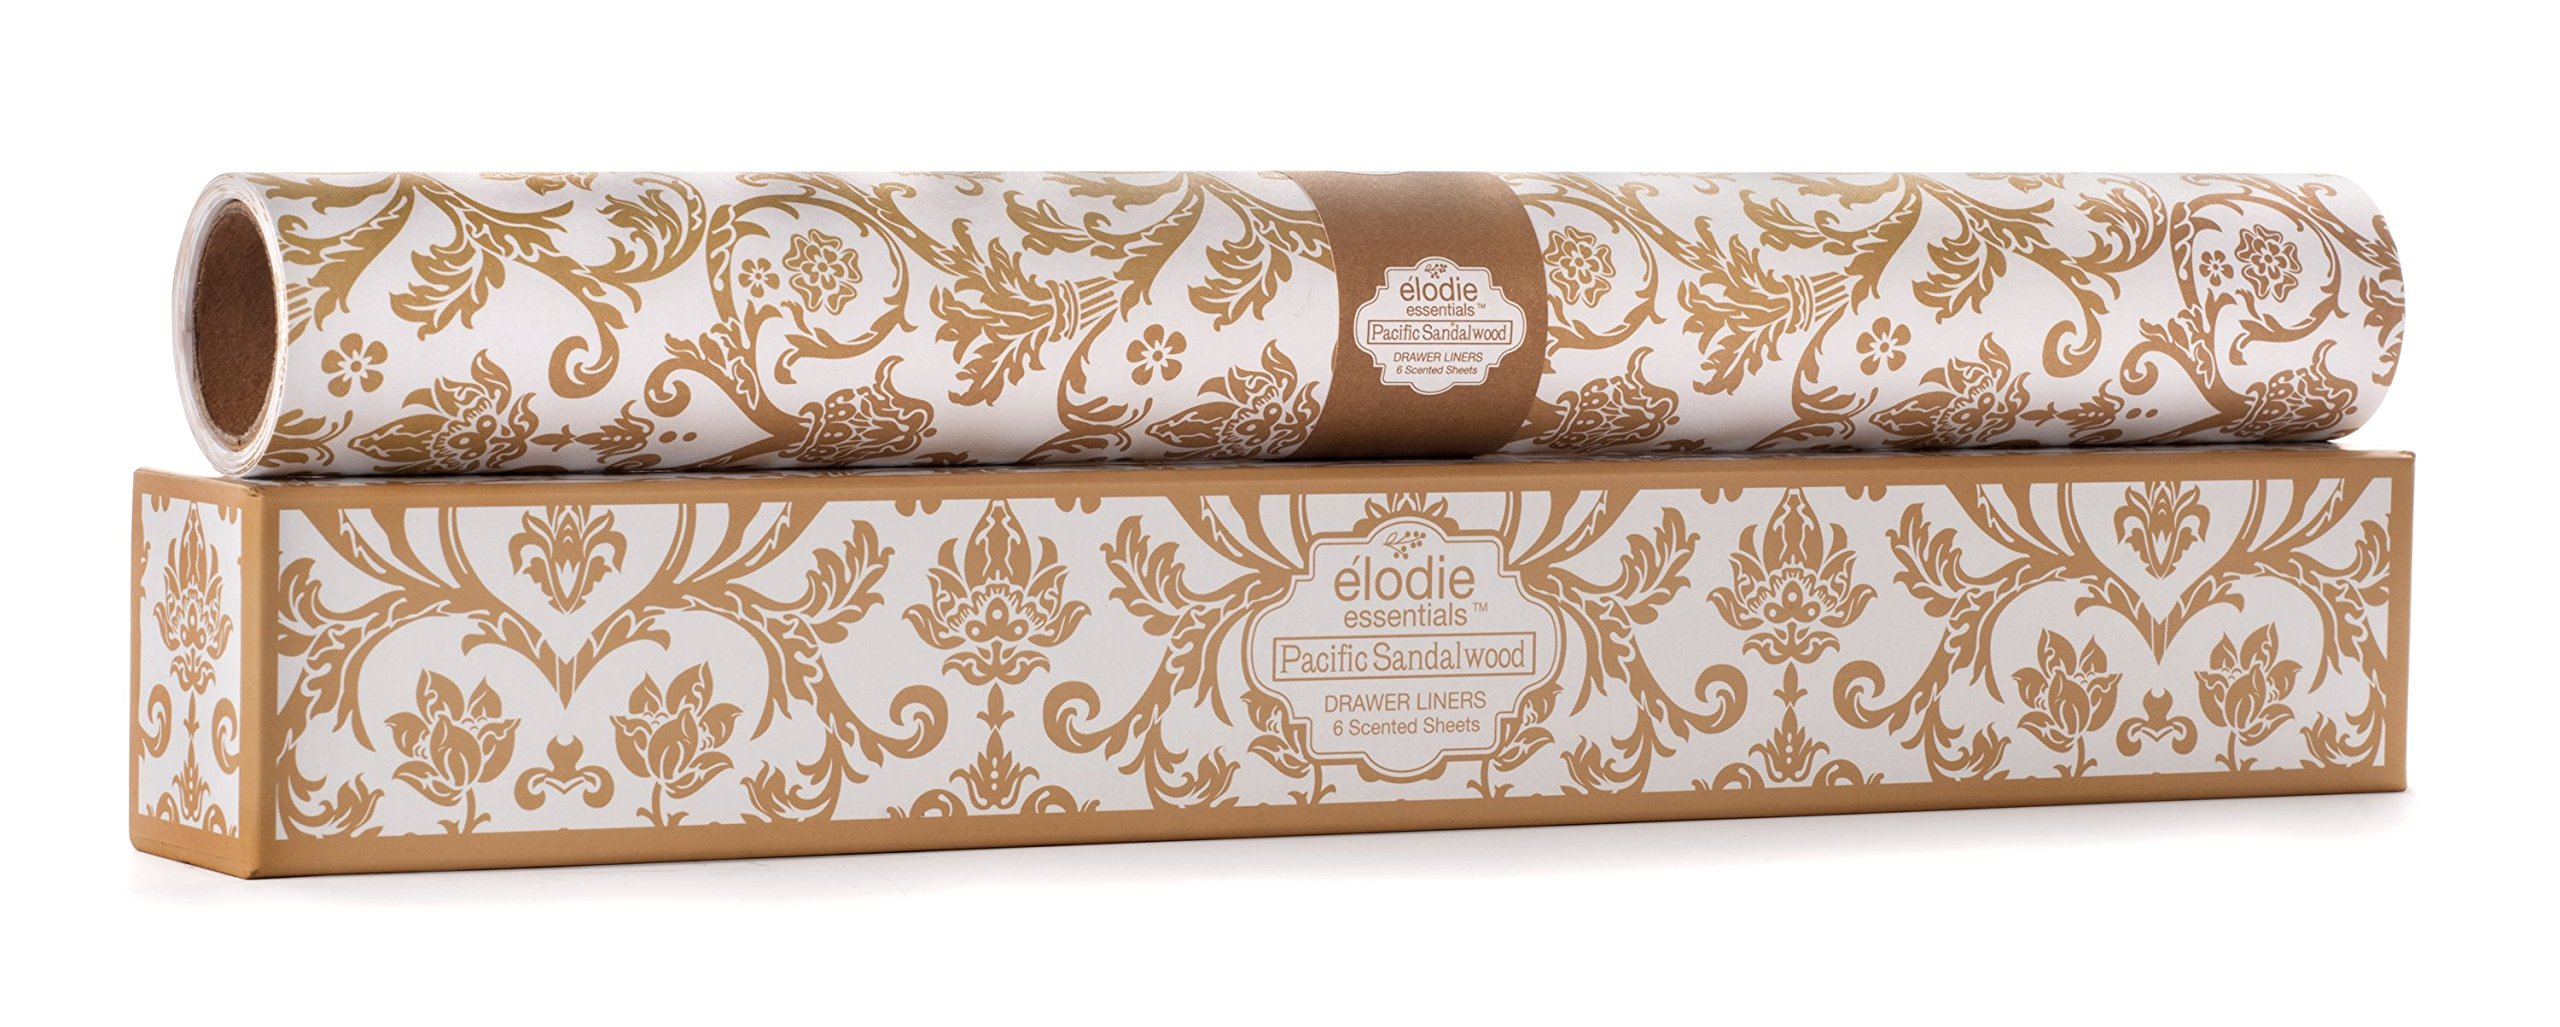 Pacific Sandalwood Scented Drawer Liners - Royal Damask